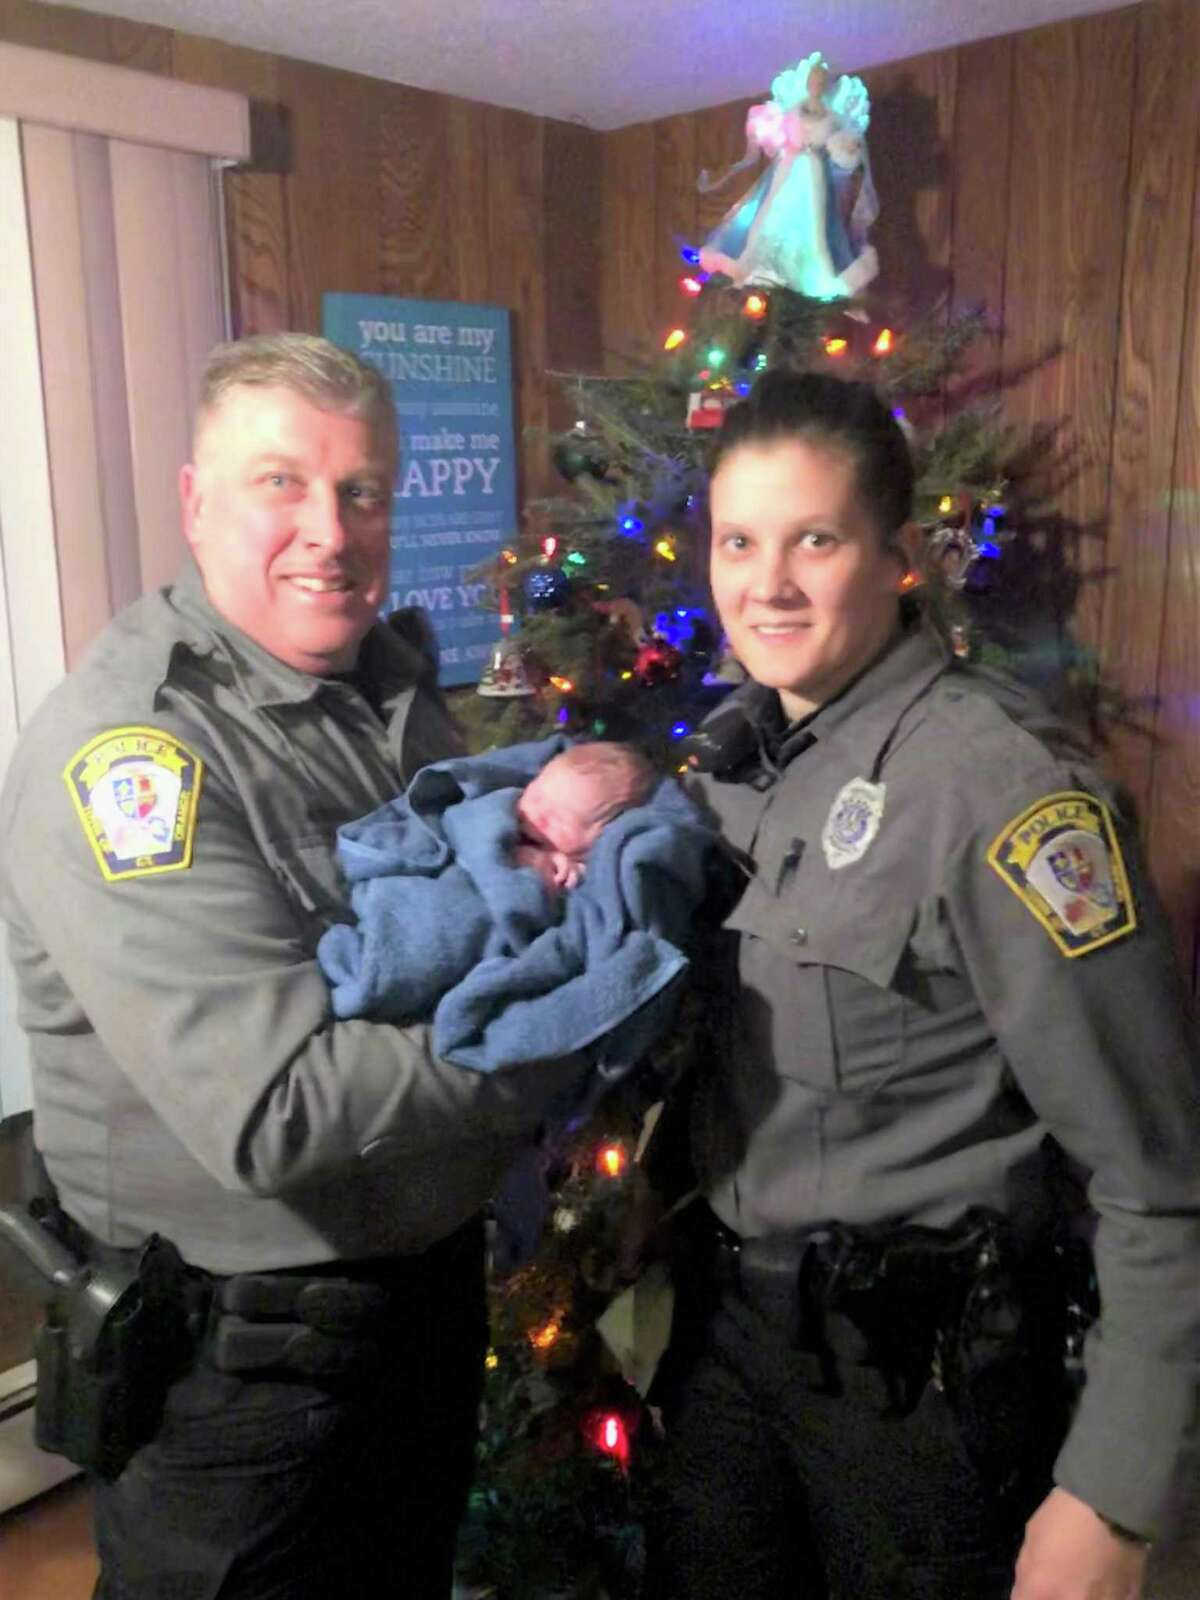 Police officer Frank Koshes, left and Officer Emily Taylor holding newborn bundle of joy, Jillian, who was born at home .